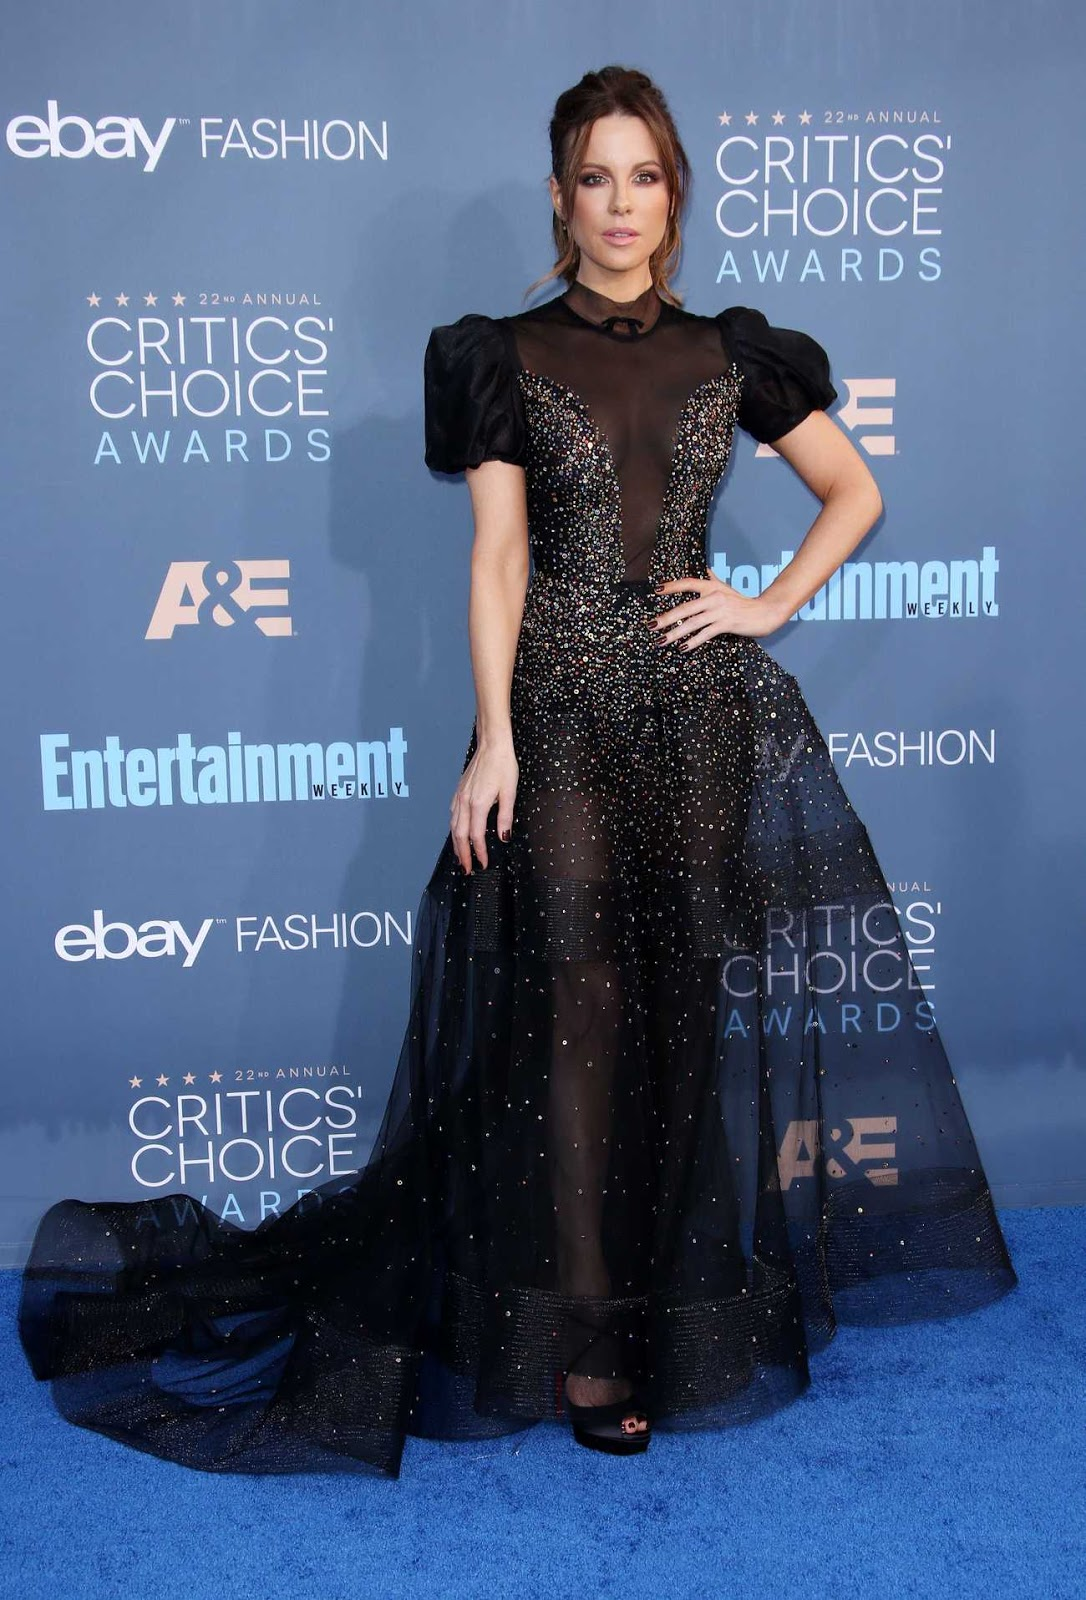 Kate Beckinsale steals the show in sheer glittering ballgown at the 22nd Annual Critics' Choice Awards